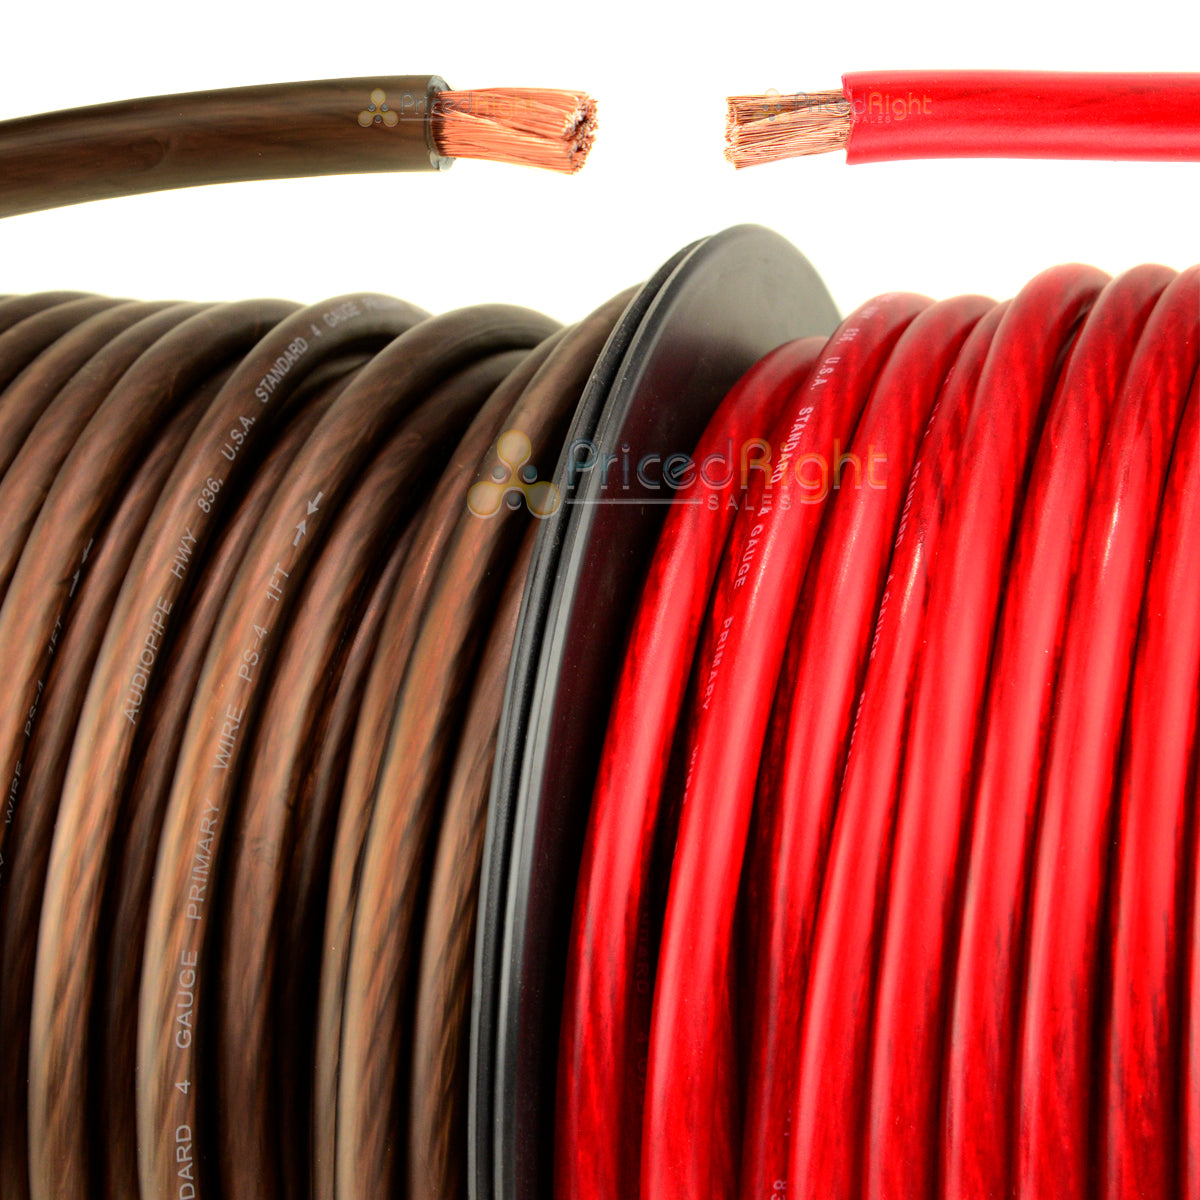 50' Ft Super Flexible 4 Gauge Power Wire or Ground Cable 25 FT Red 25 FT Black